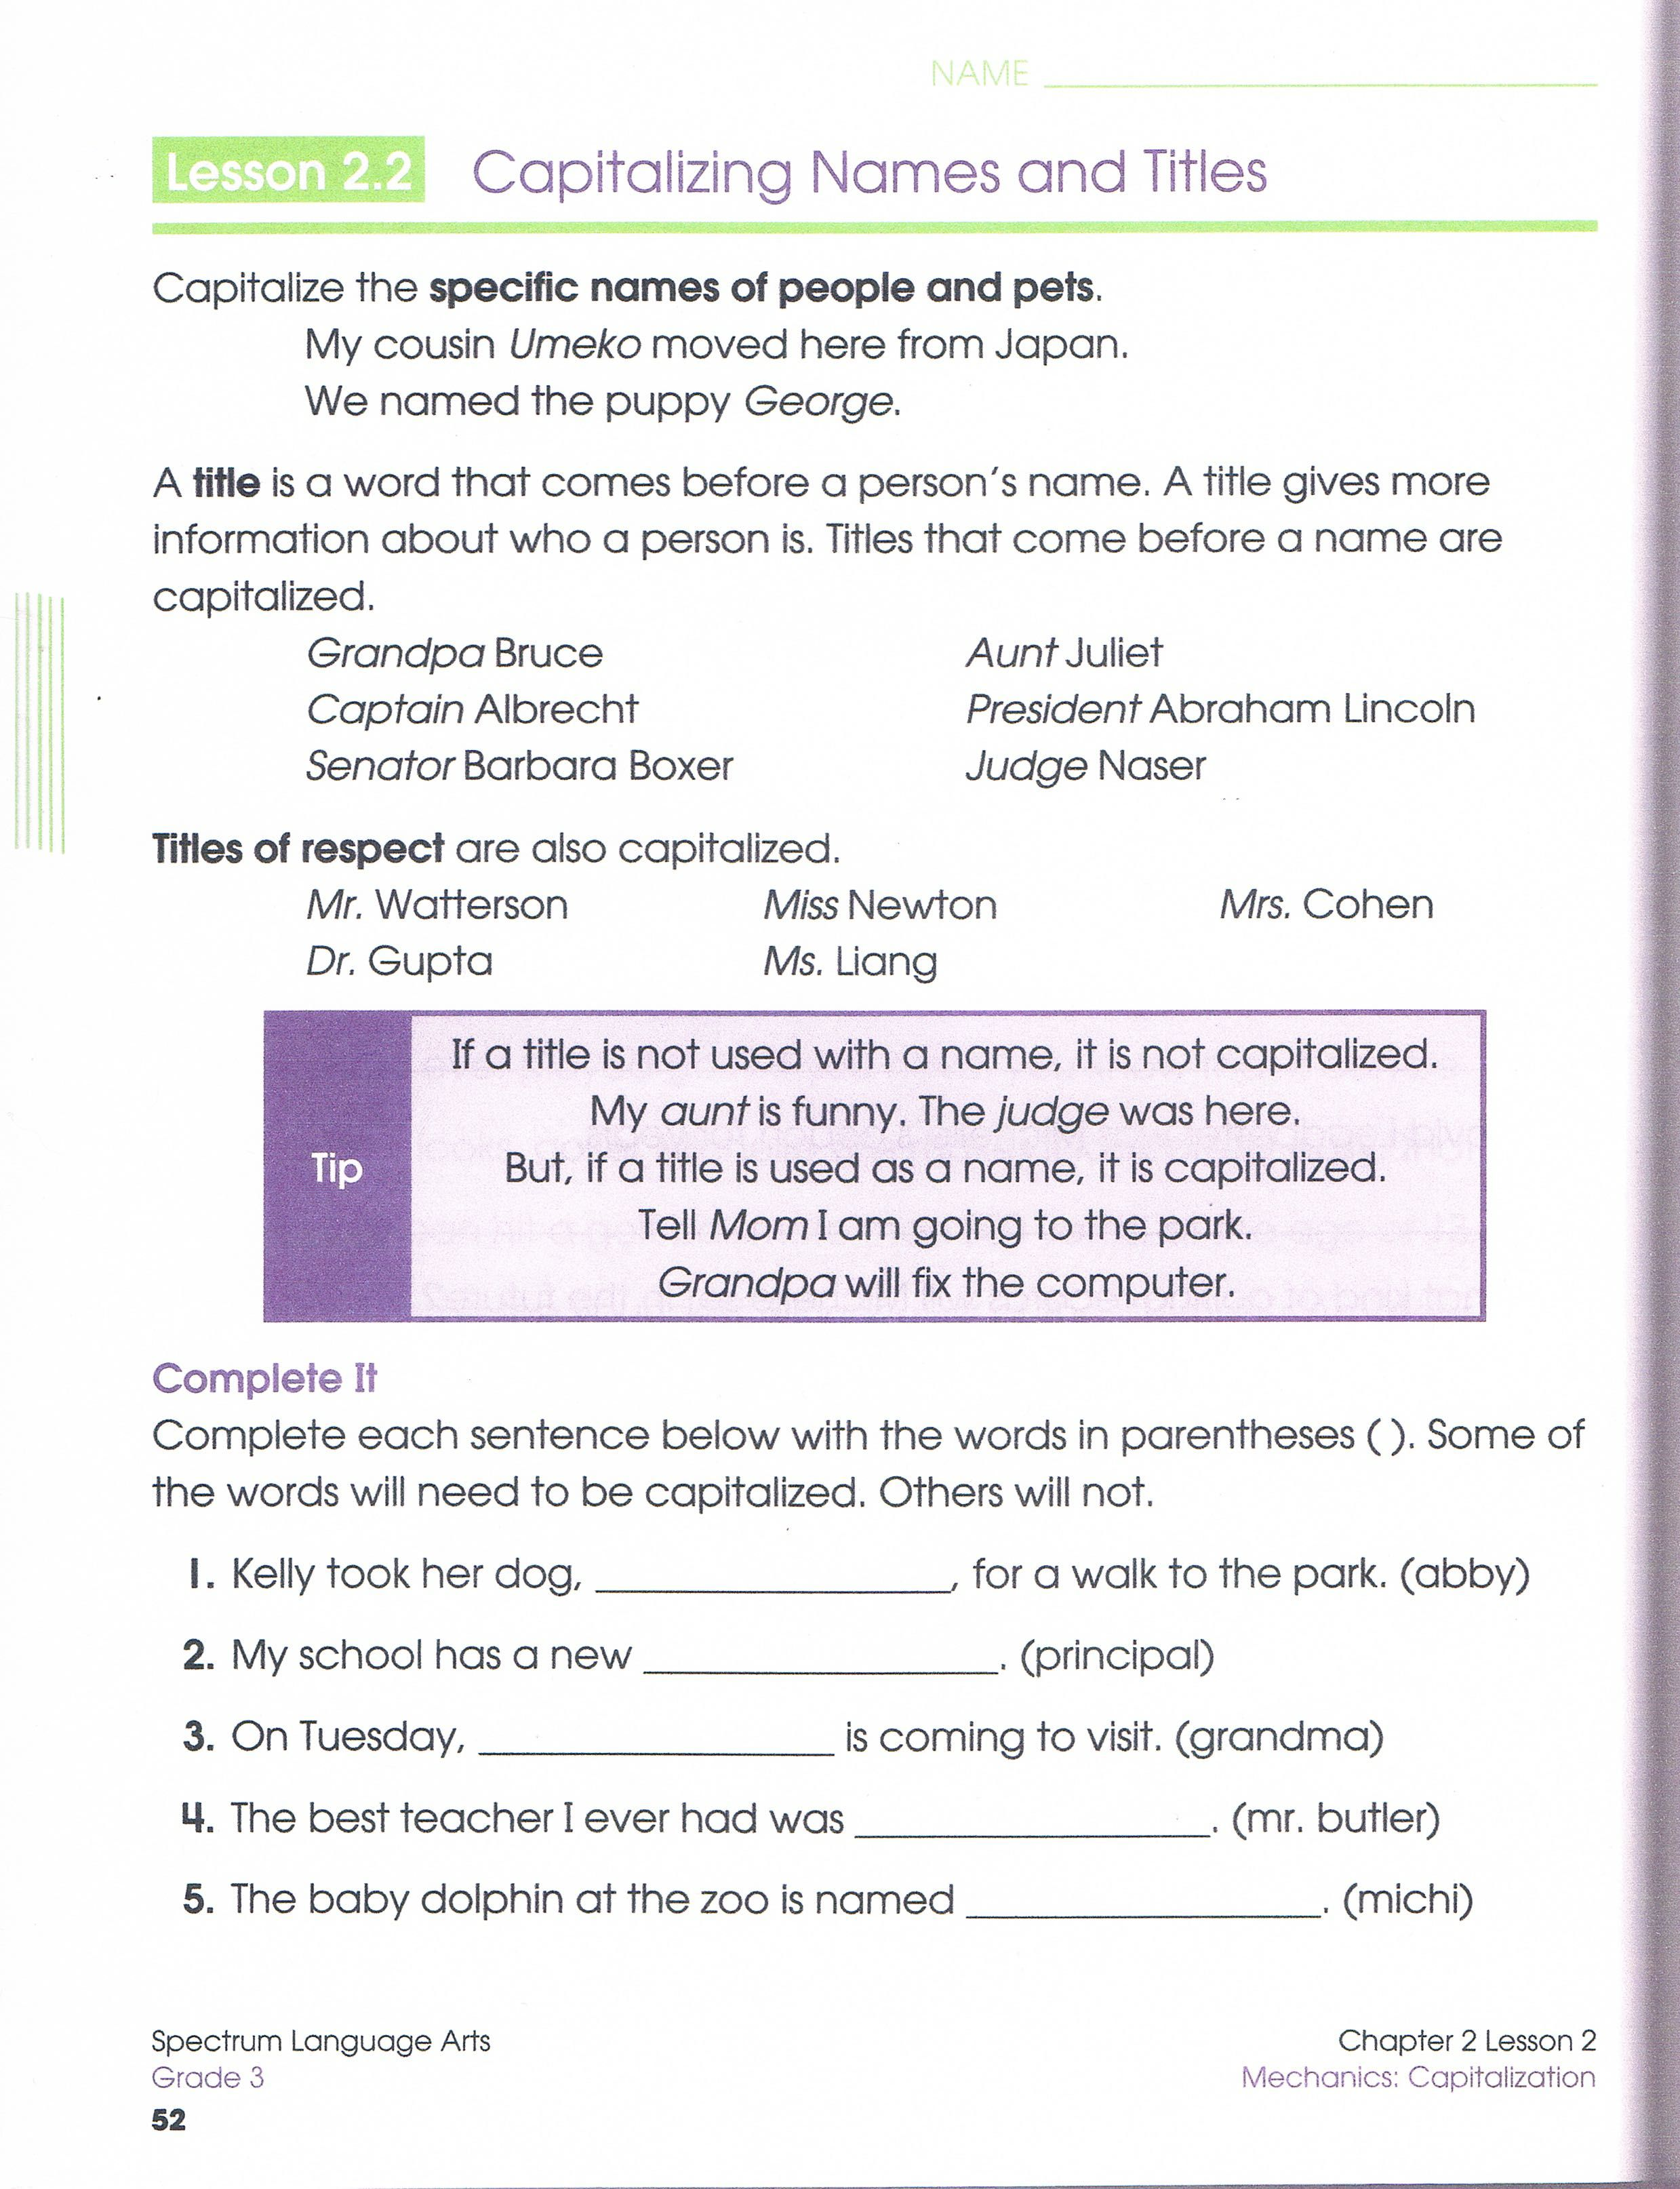 worksheet Capitalization Worksheets 4th Grade i would use this as an introduction worksheet for capitalization it gives the students a